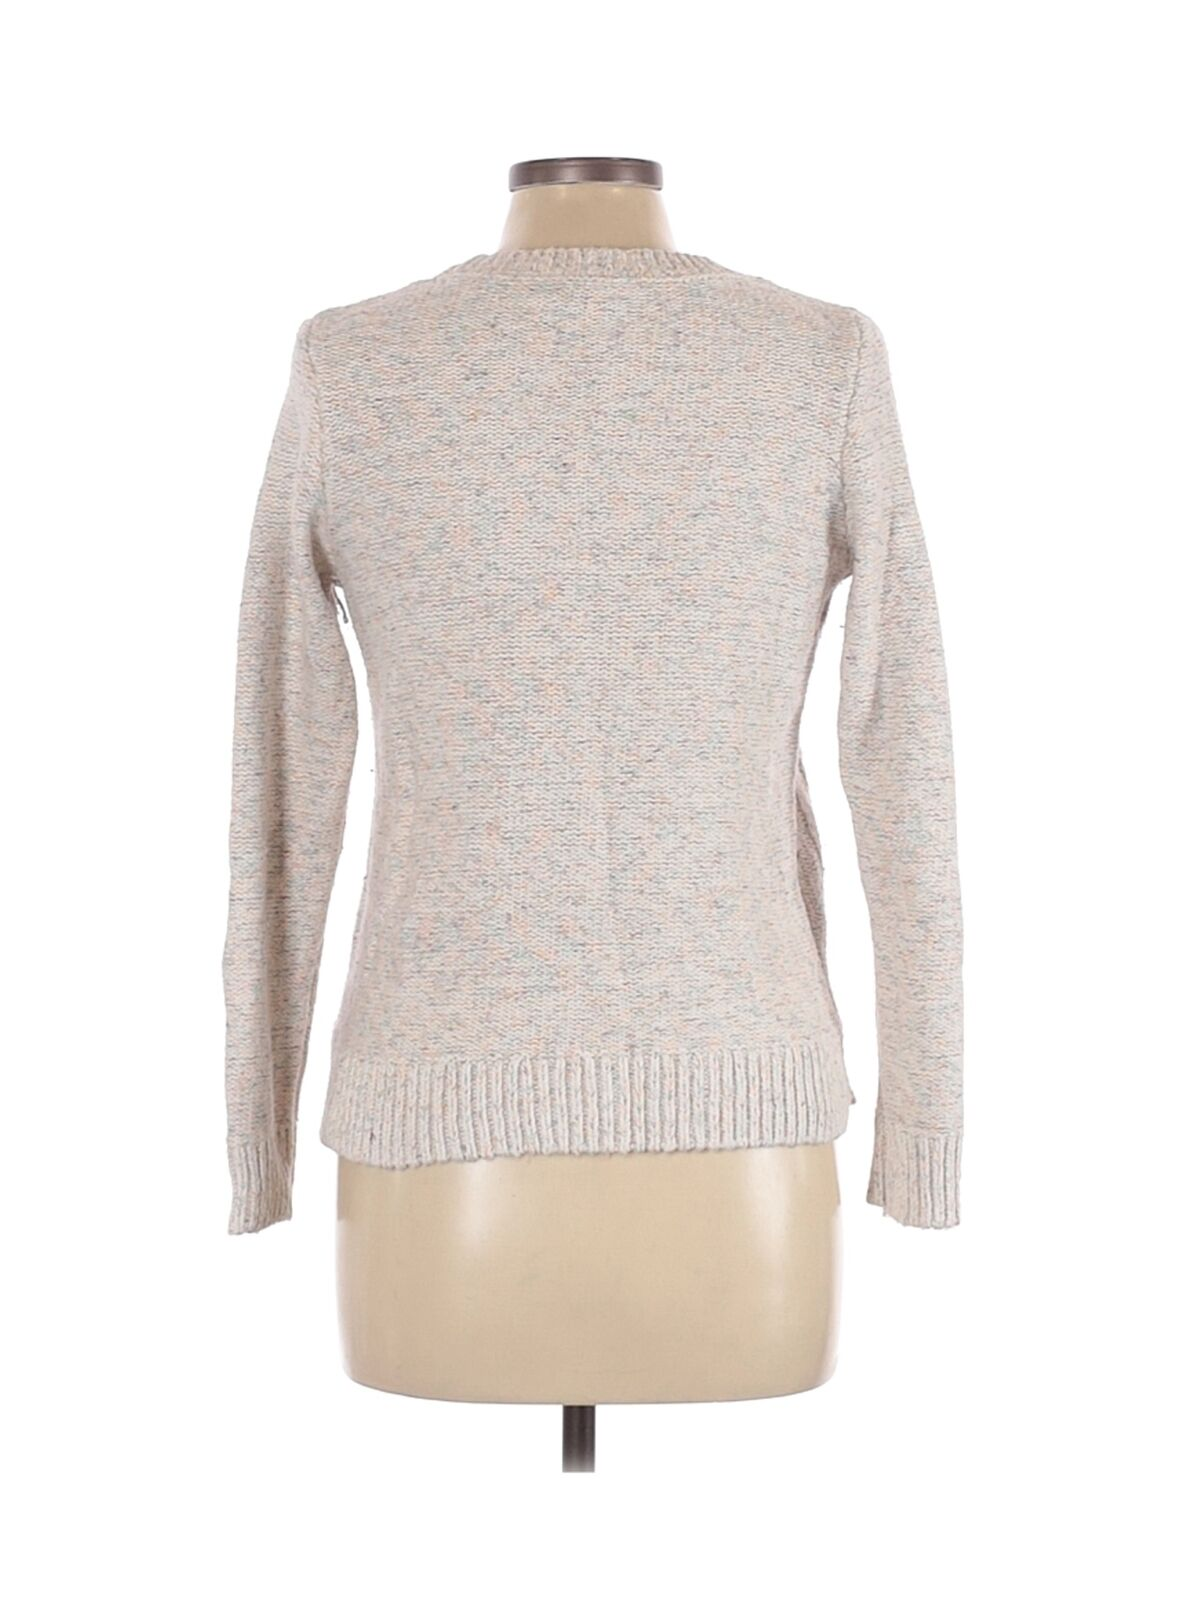 Tommy Hilfiger Women Brown Pullover Sweater M - image 2